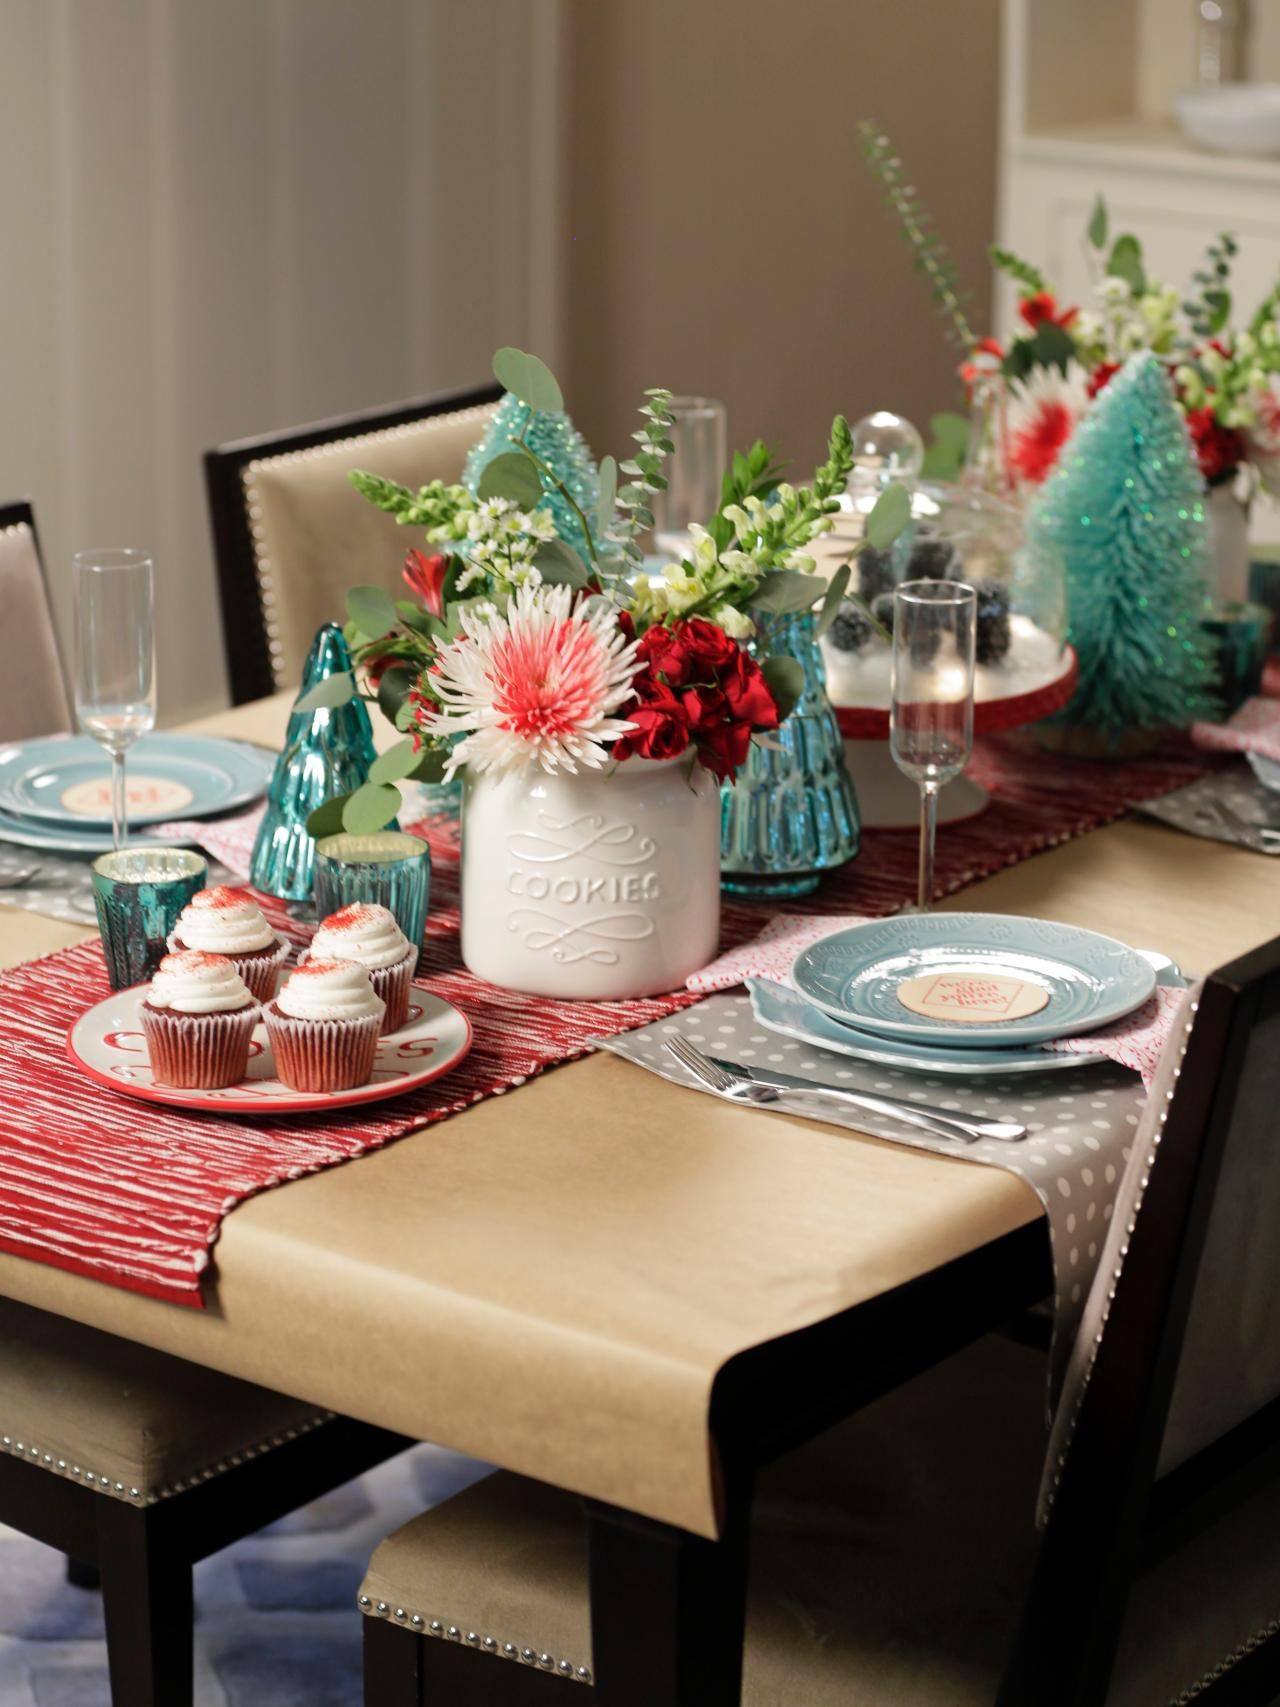 Vintage Red And White Holiday Table Setting Christmas Table Decorations Holiday Table Settings Christmas Table Settings